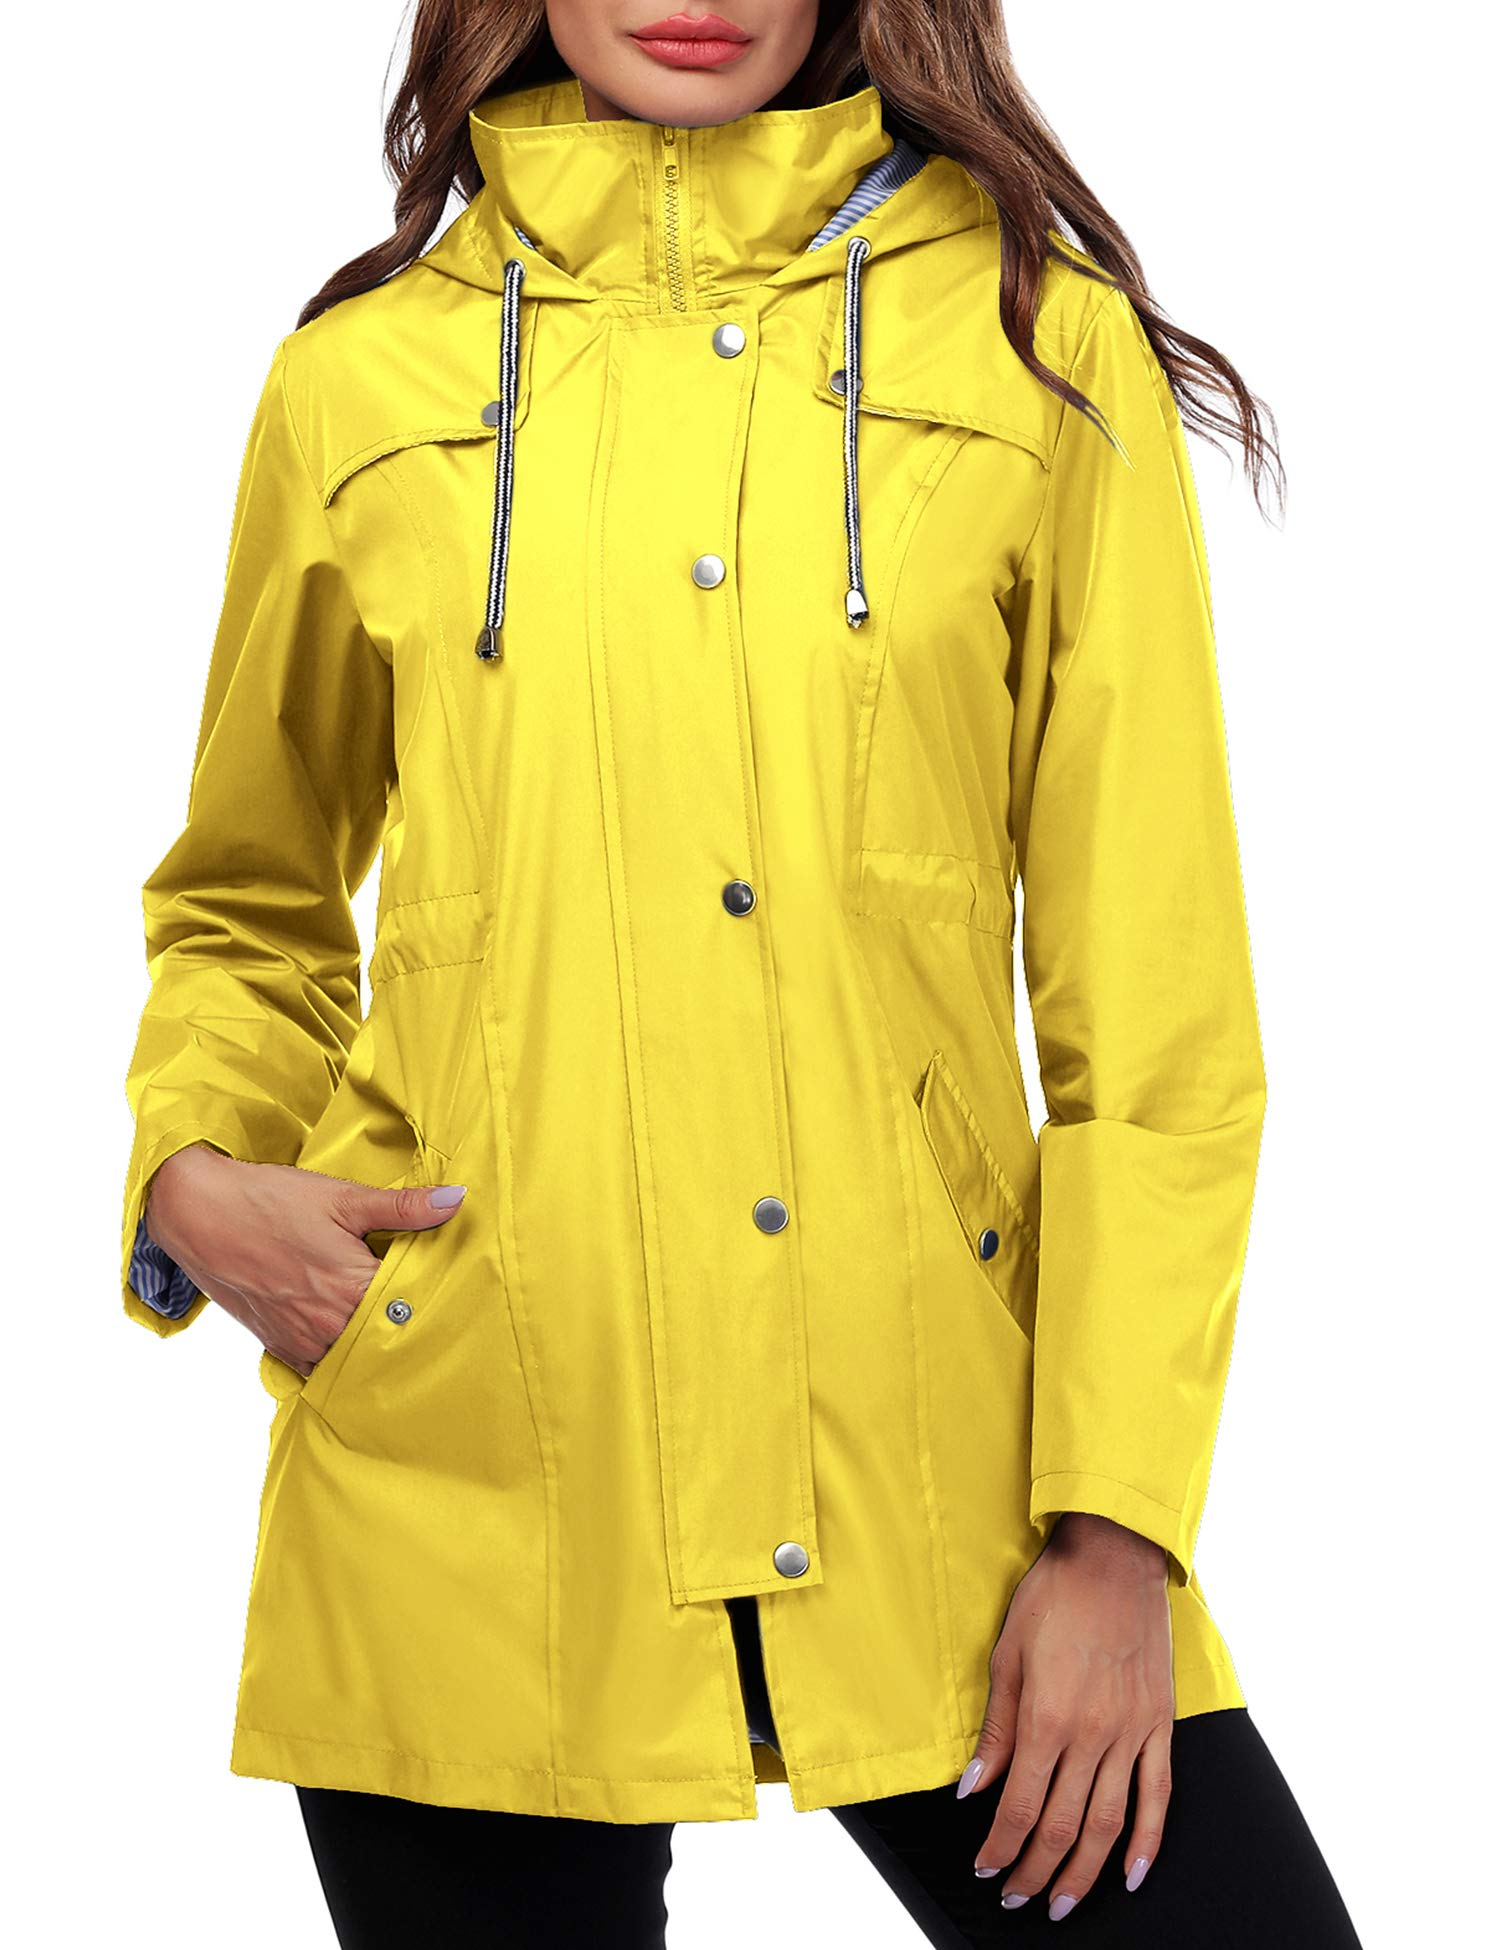 Doreyi Women Rain Jacket Striped Lined Hooded Lightweight Outdoor Waterproof Raincoat